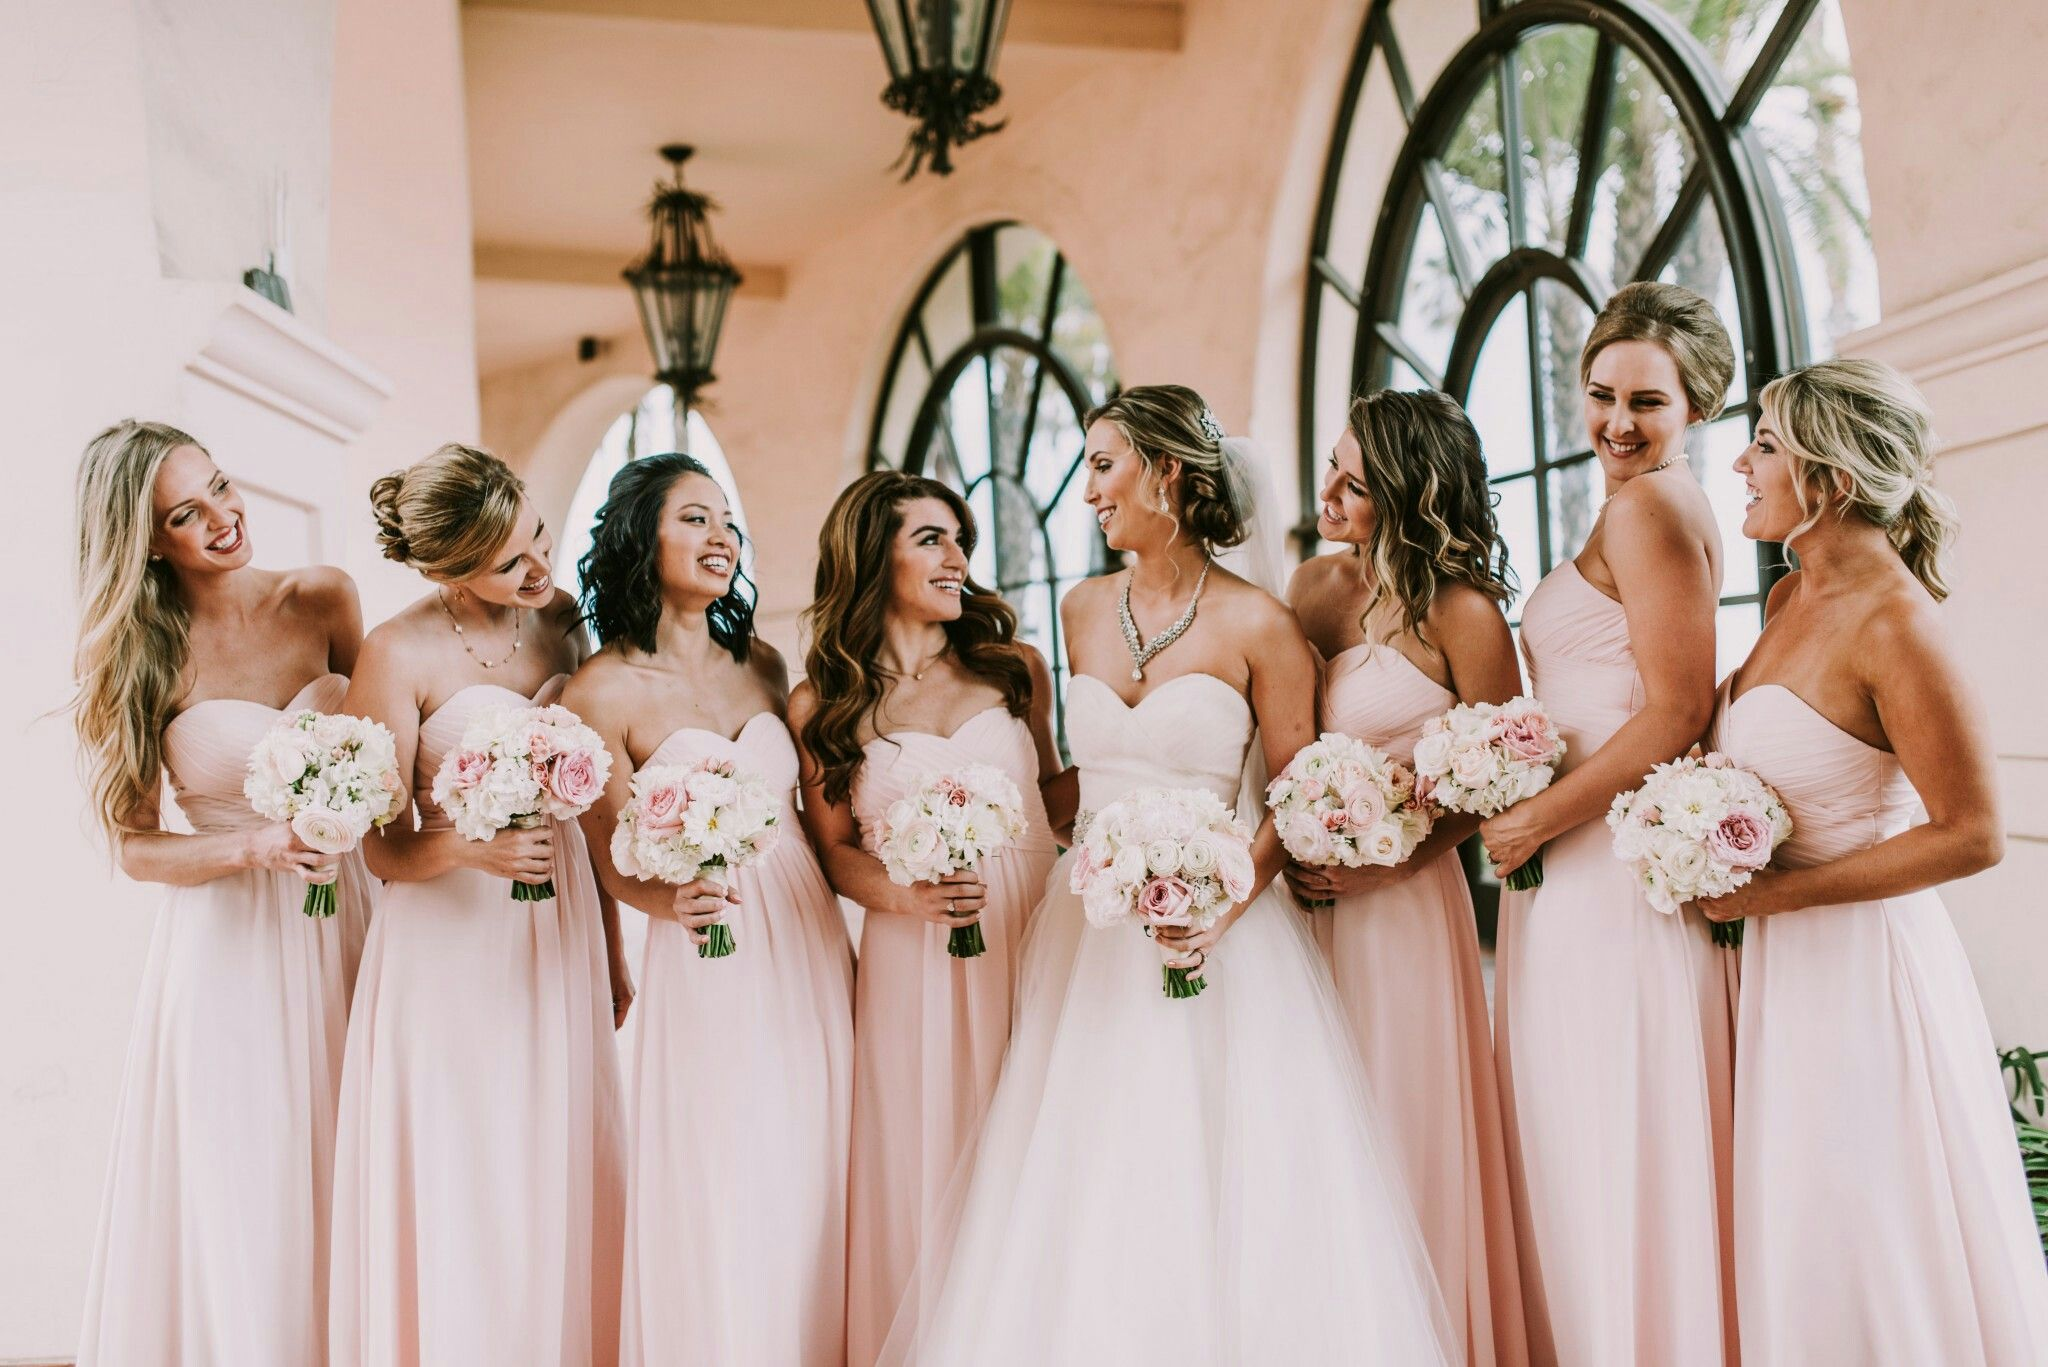 12c76e57fd17 Blushing pink bridesmaids gowns from Azazie! | My future wedding ...